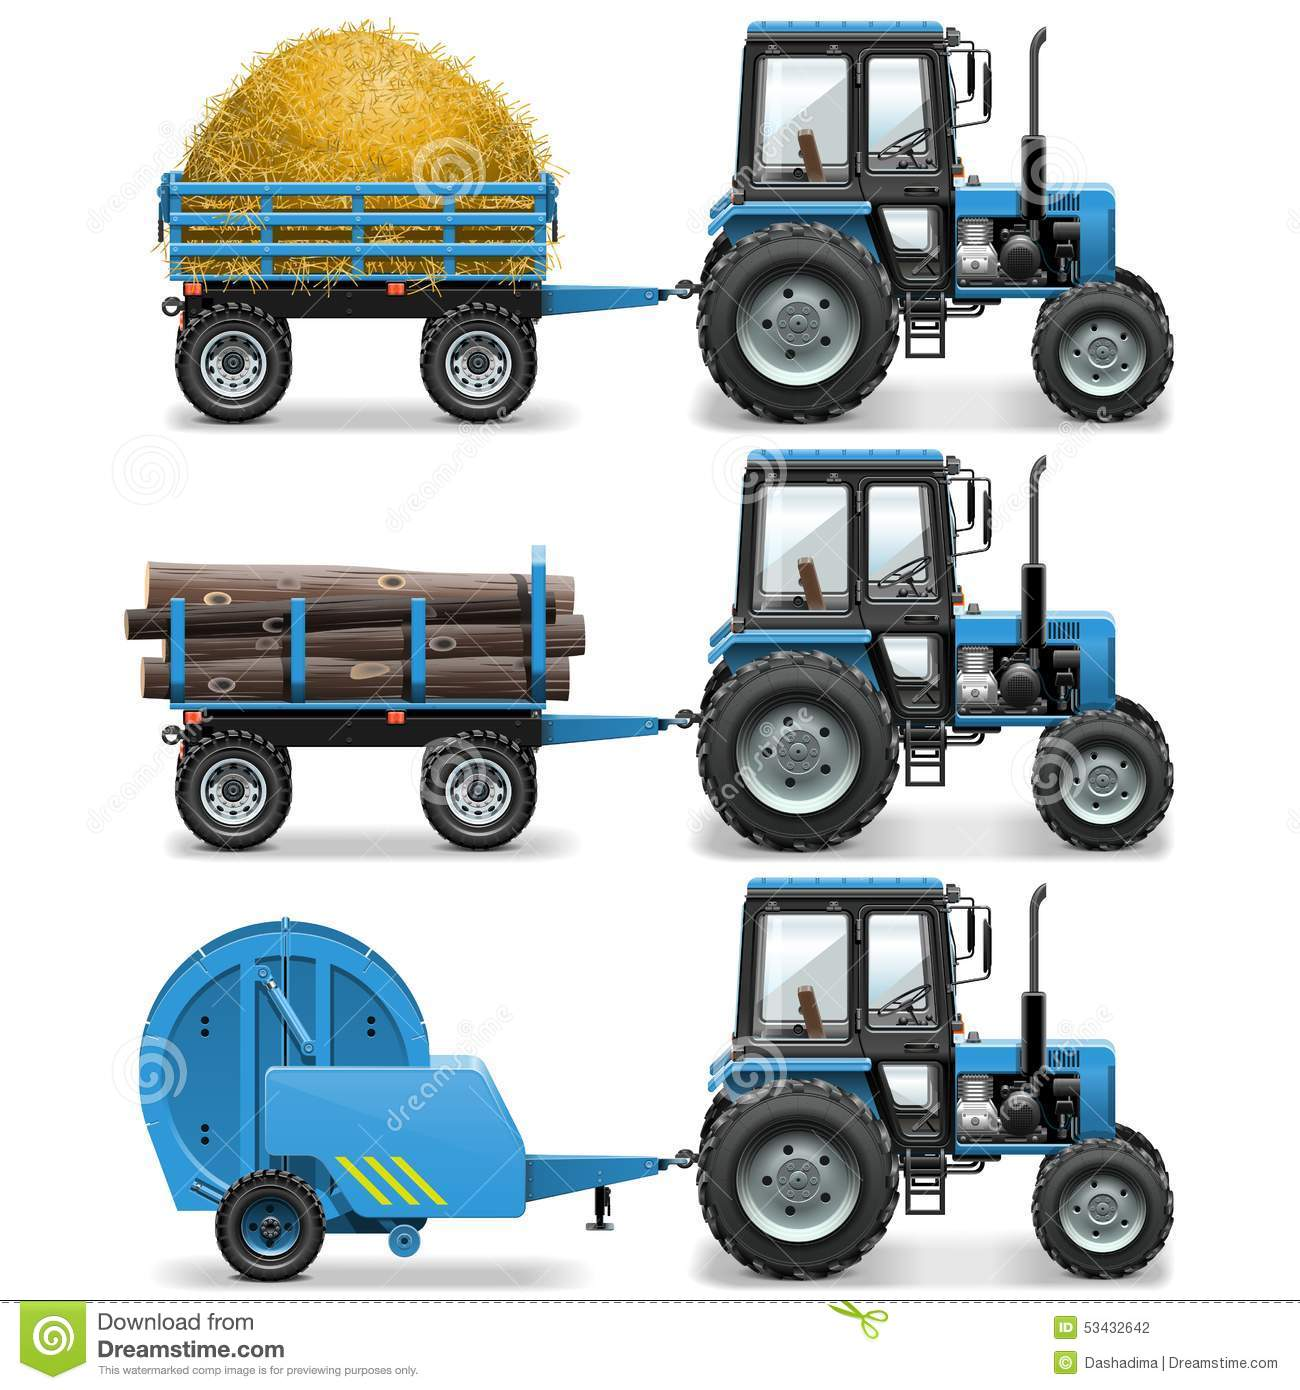 Hay Farmer Tractor Cartoon : Baler cartoons illustrations vector stock images